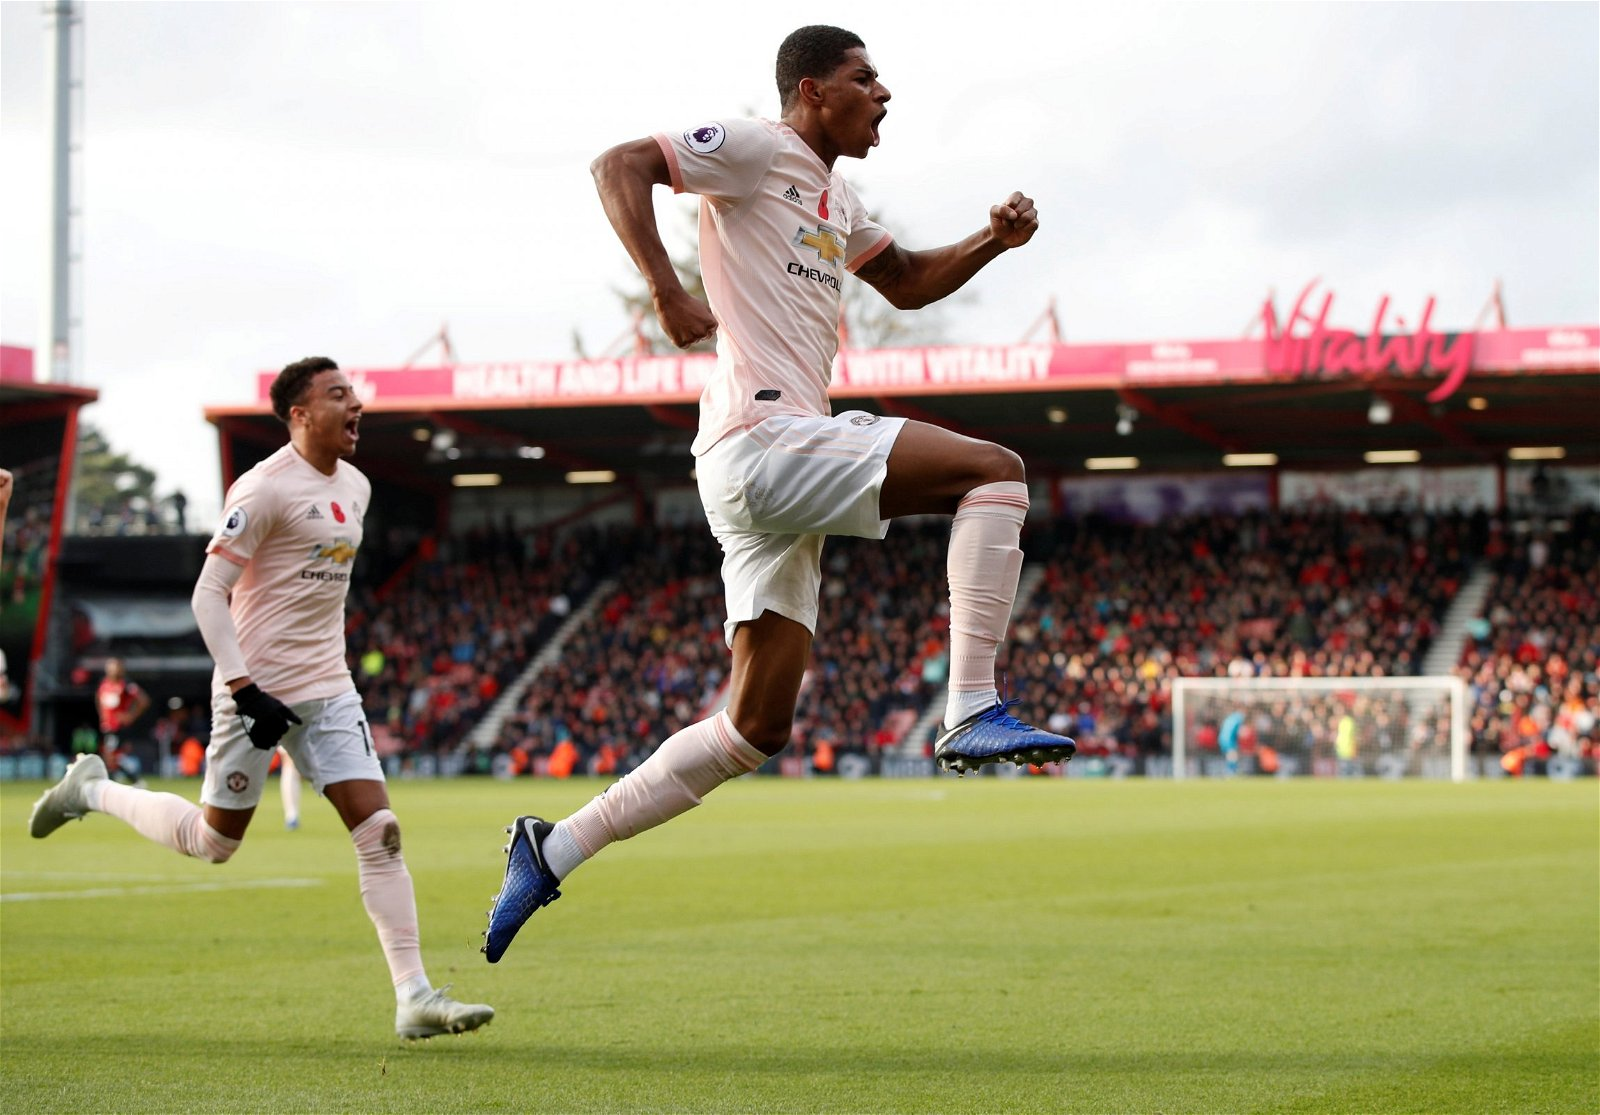 Marcus Rashford celebrates scoring against Bournemouth